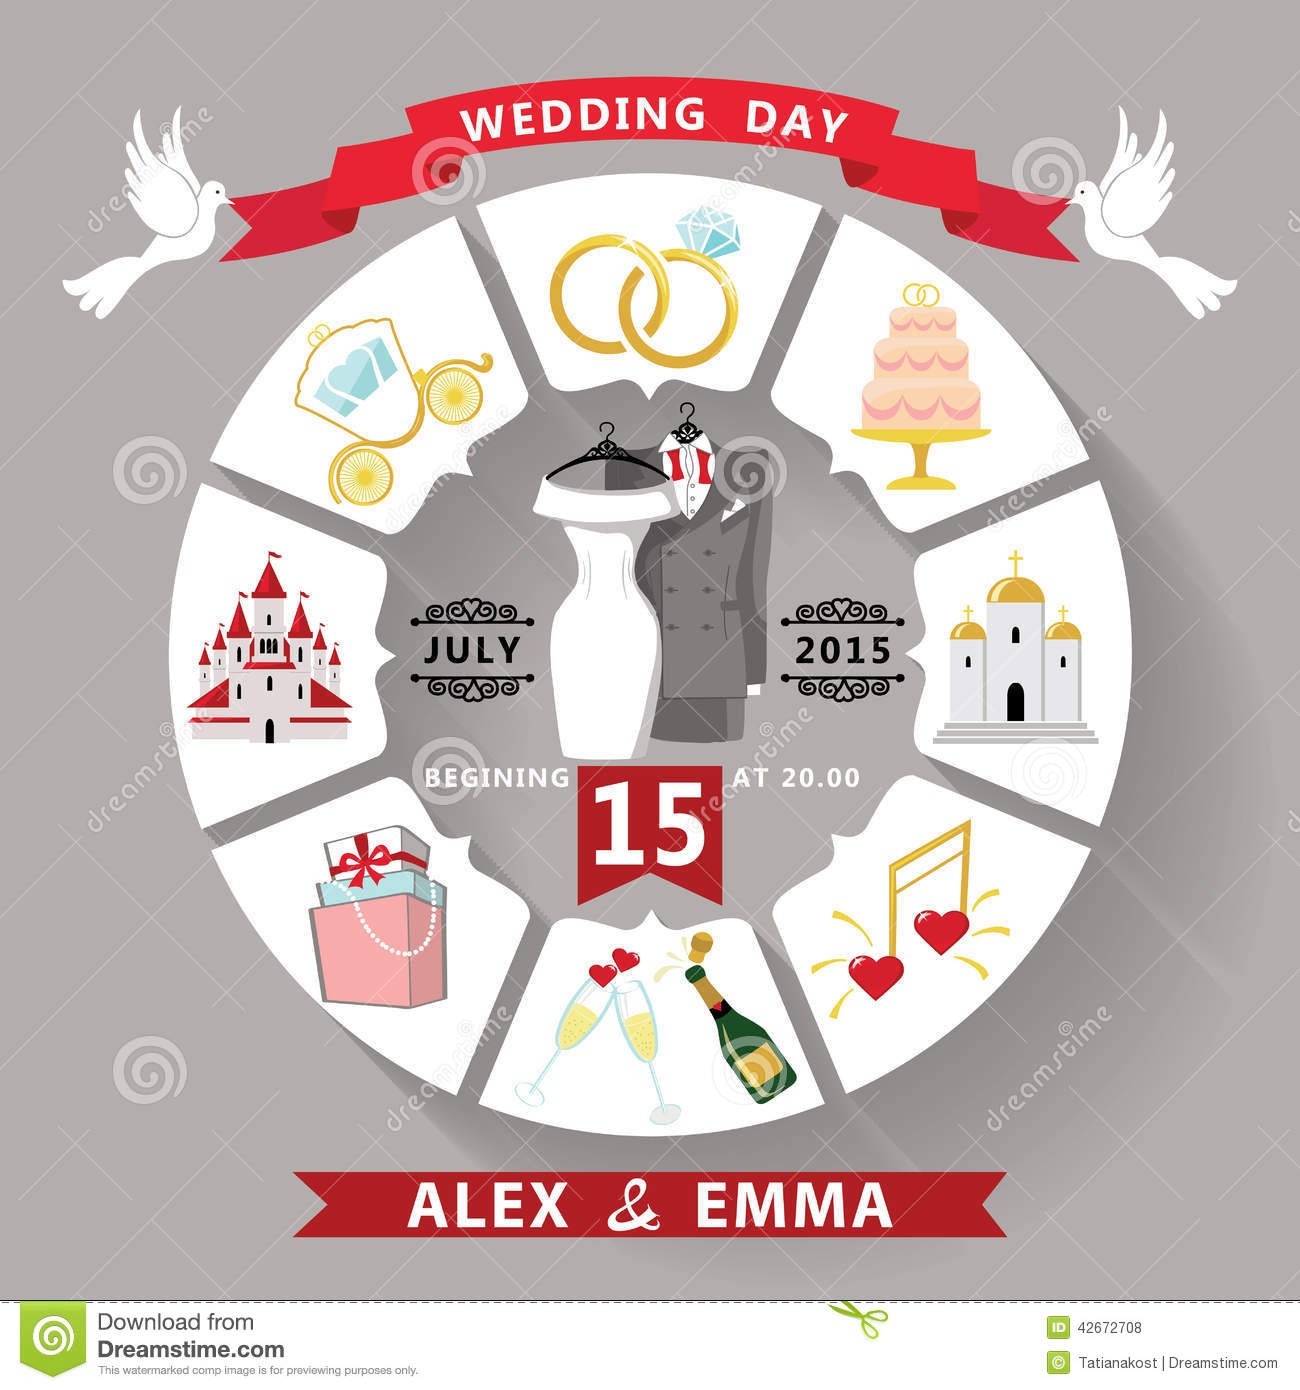 Wedding Invitation In Infographic Style.Wedding Wear Stock